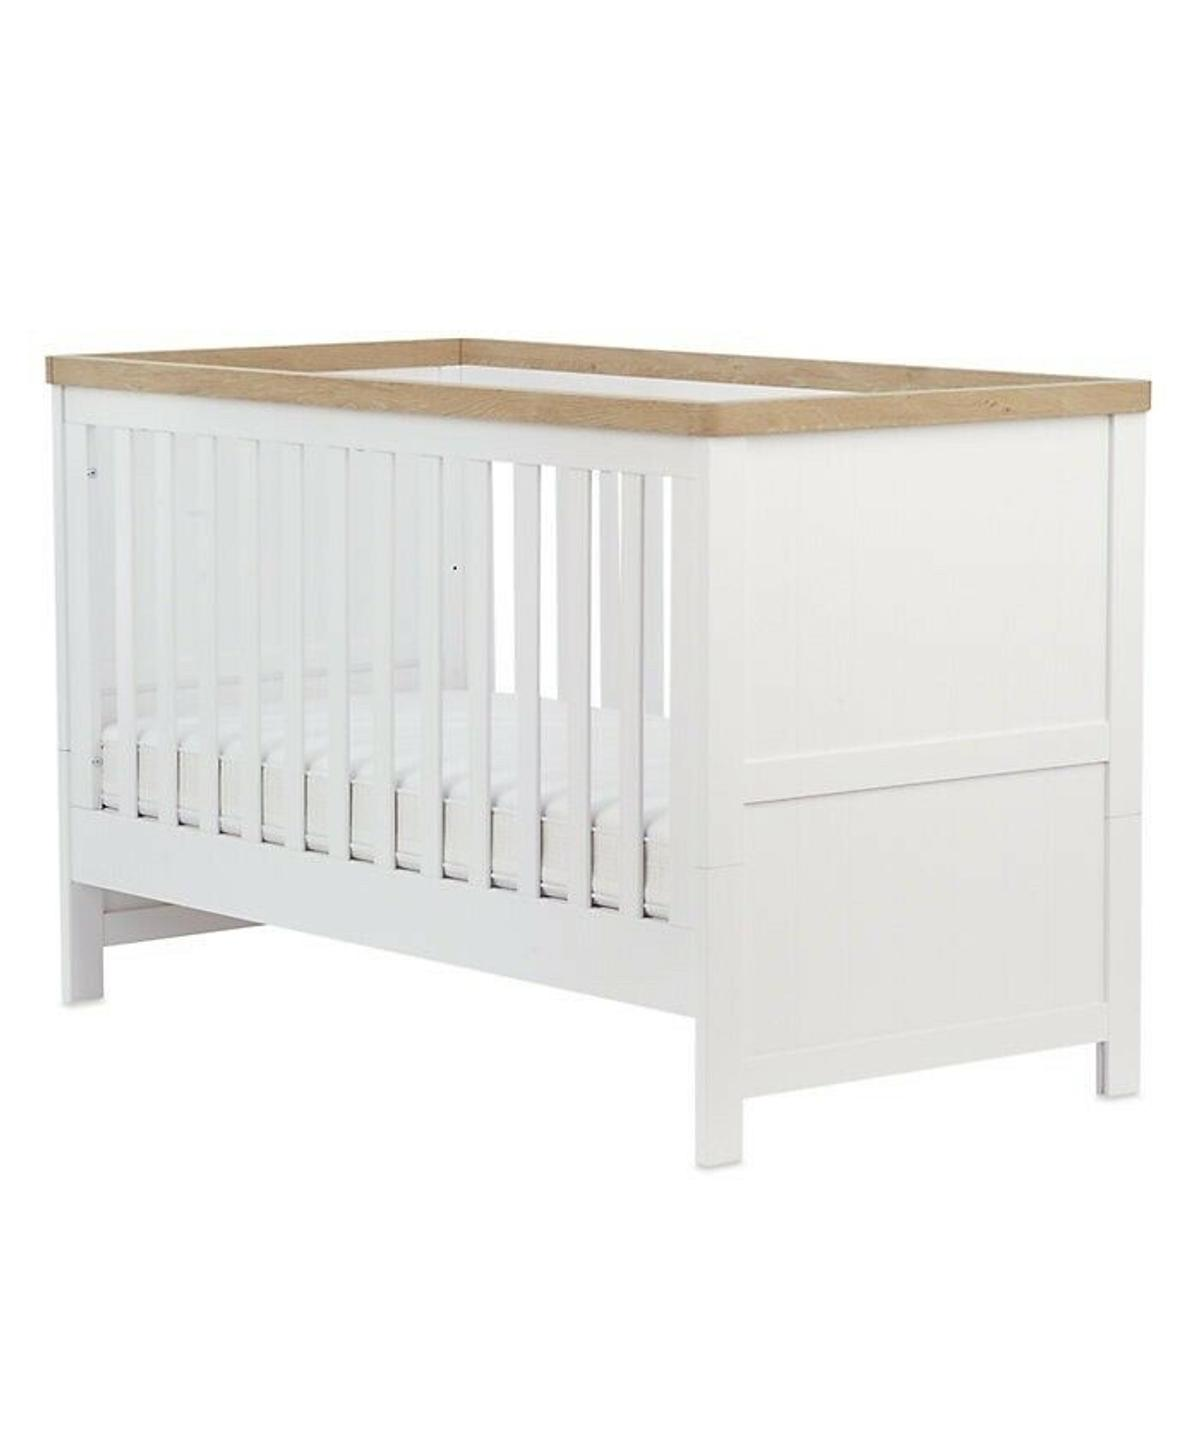 Cot/Cot bed in excellent condition. Very well looked after. Use from birth with 3 base height positions. Purchased for £295. Dismantled for storage purposes but same as the one in the pictures.  Detailed information below:  Features and benefits for mothercare lulworth cot bed - classic white suitable from birth to approx. 4 years converts from cot to toddler bed three base height positions rounded corners coordinating changing unit and wardrobe available separately dimensions: 75 x 14